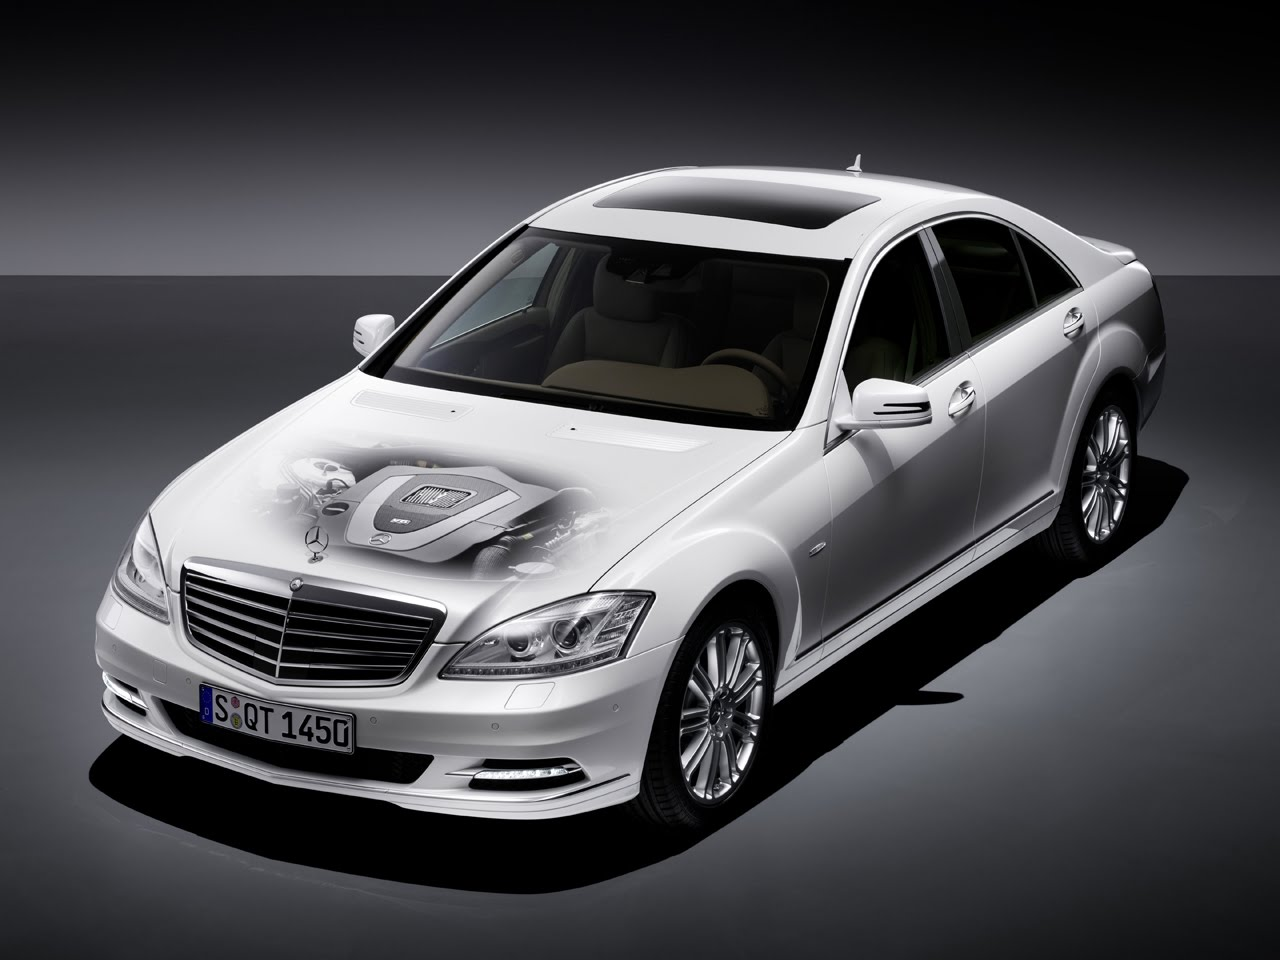 2012 new mercedes benz s400 hybrid car pictures car for Mercedes benz hybrid cars